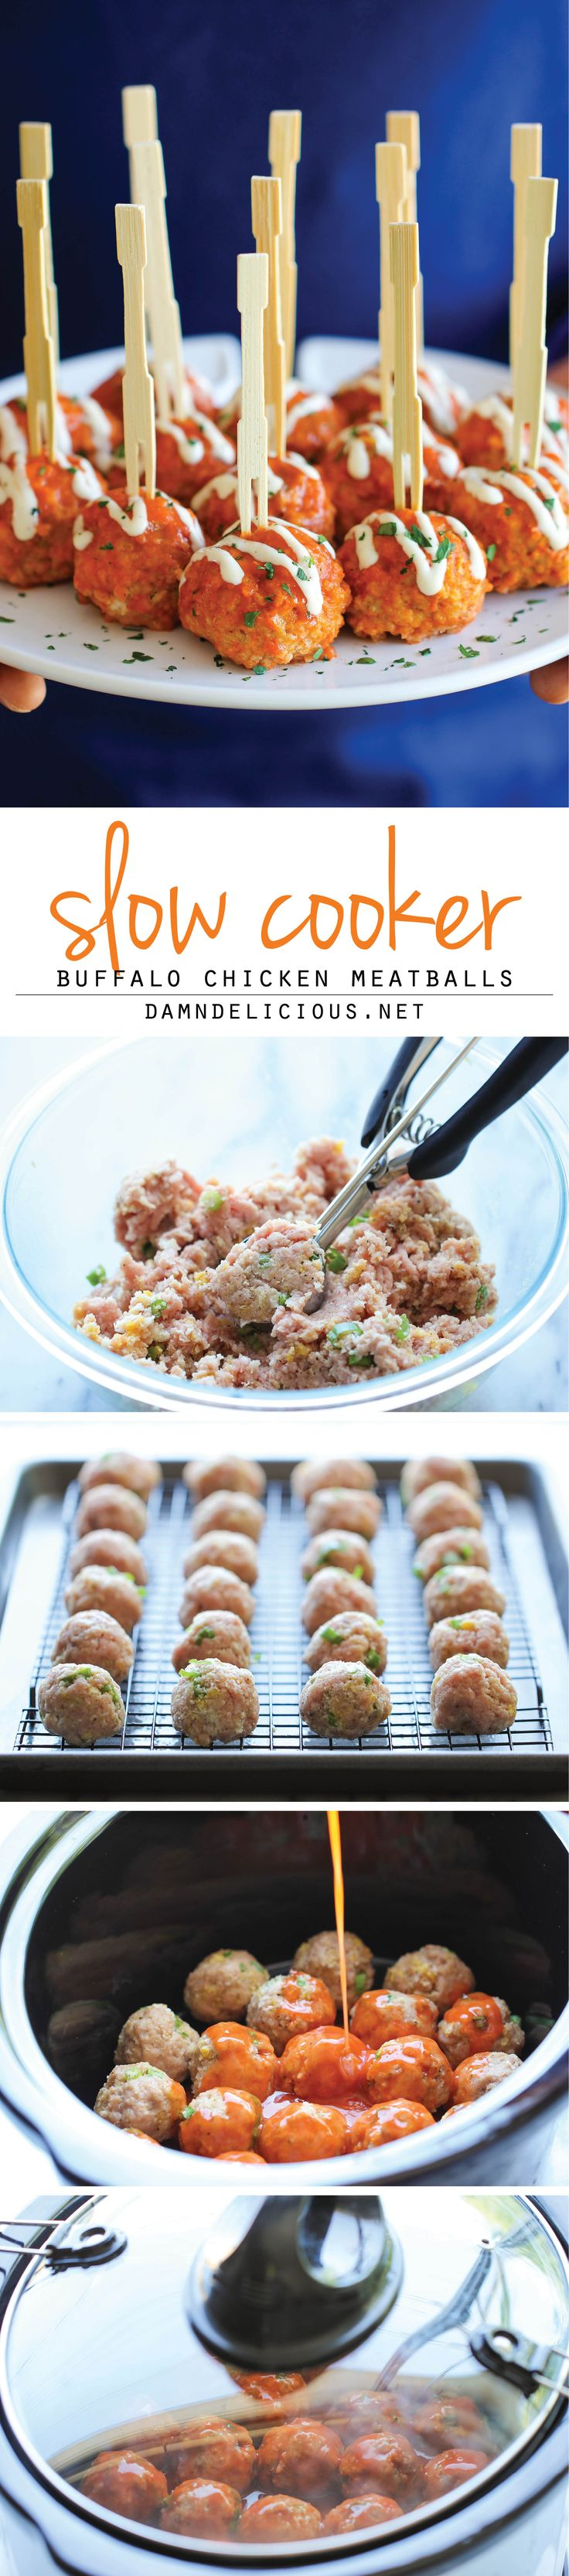 Slow Cooker Buffalo Chicken Meatballs - A lighter, healthier alternative to buffalo wings that you can make so easily right in the slow cooker!